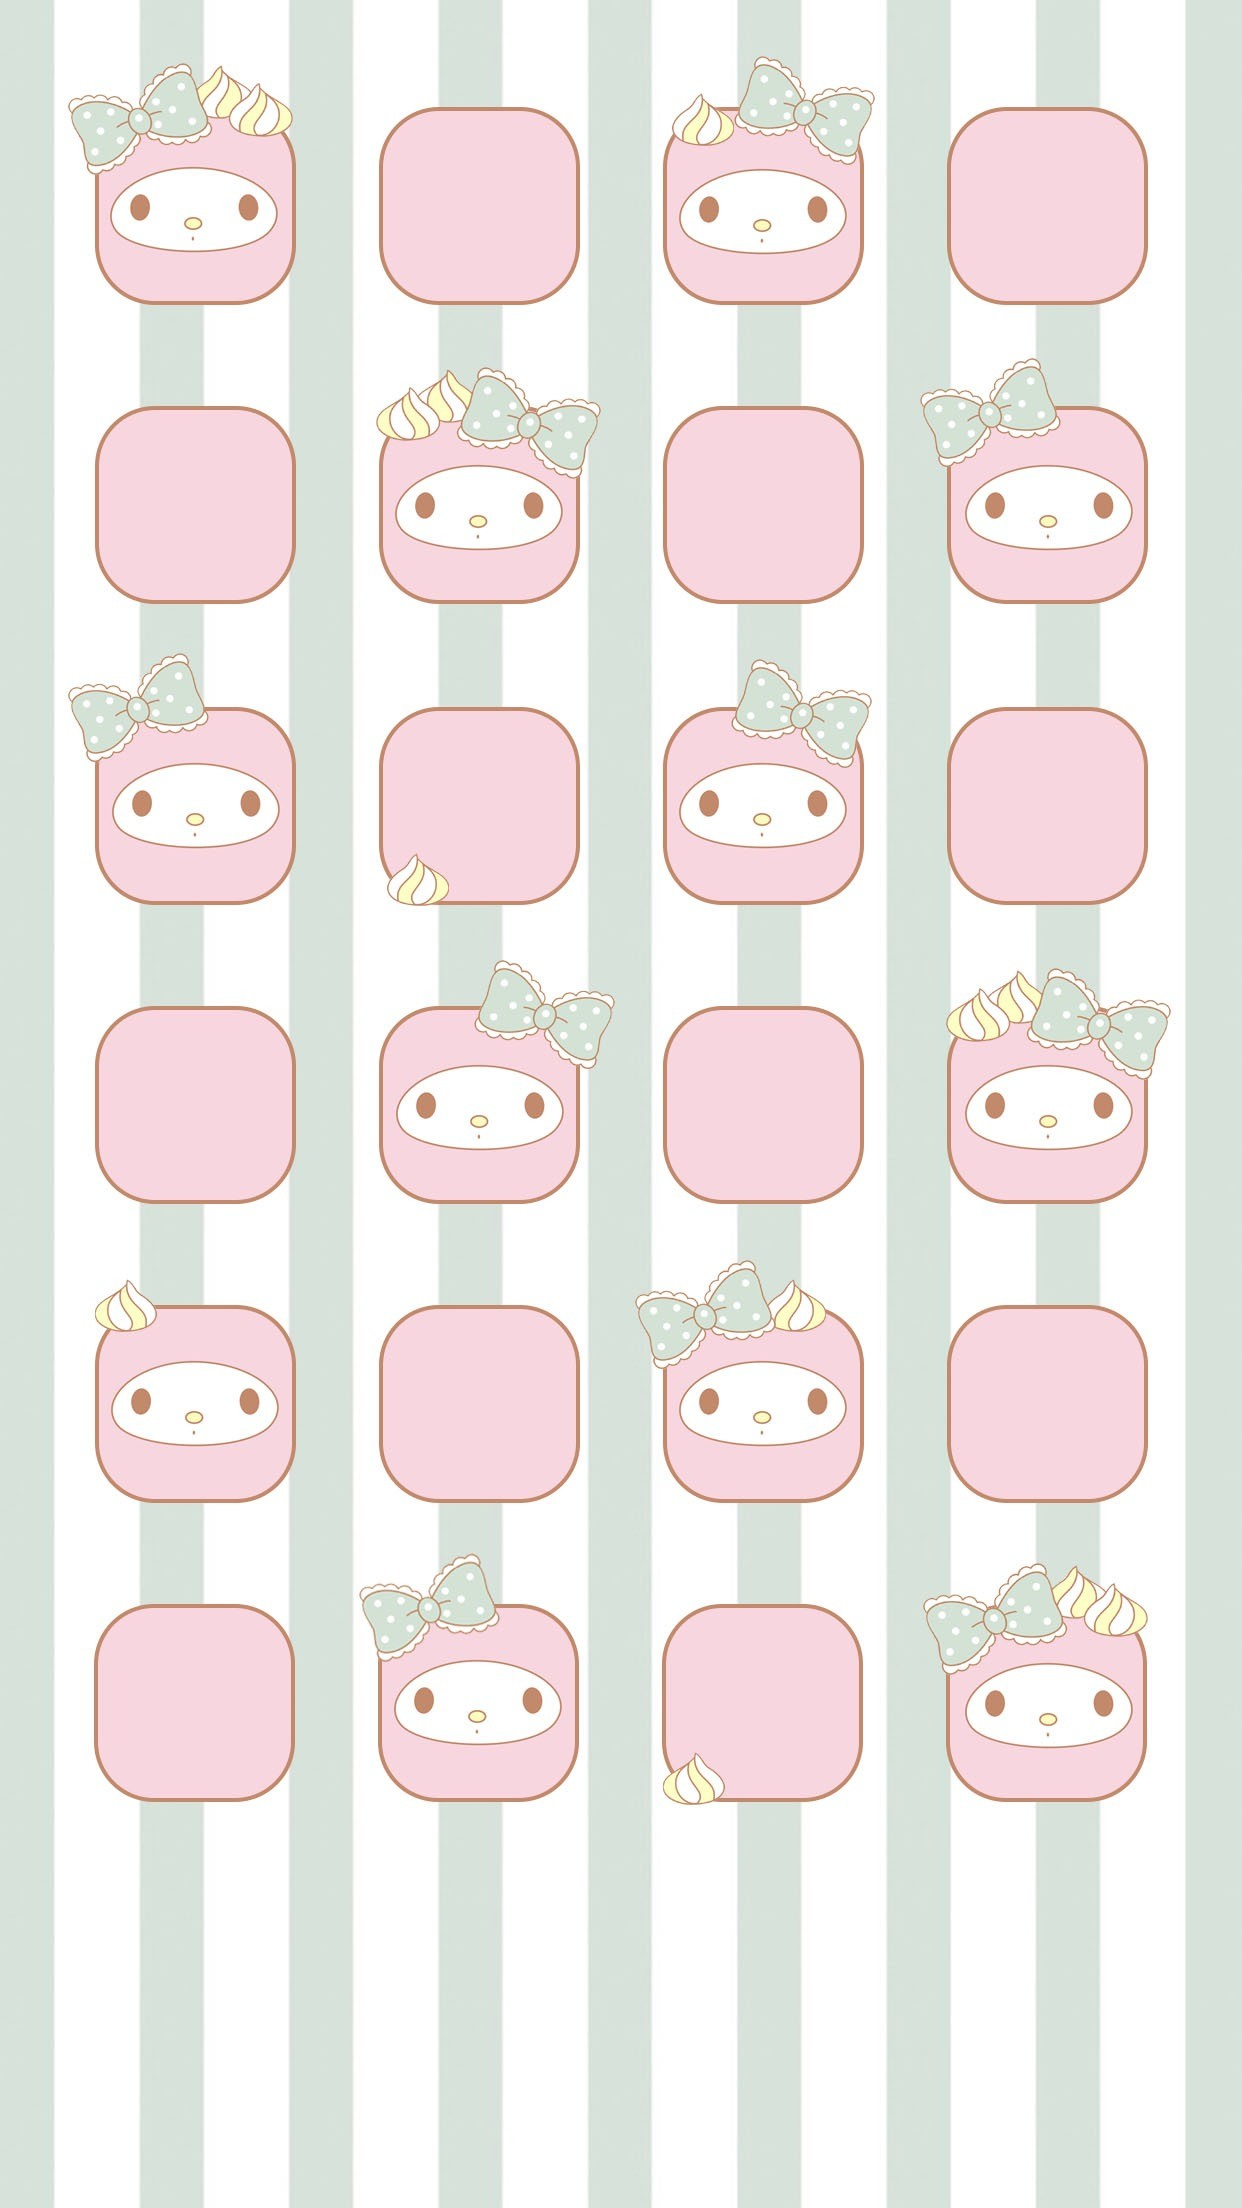 My melody. My MelodySanrioPhone WallpapersIphone …